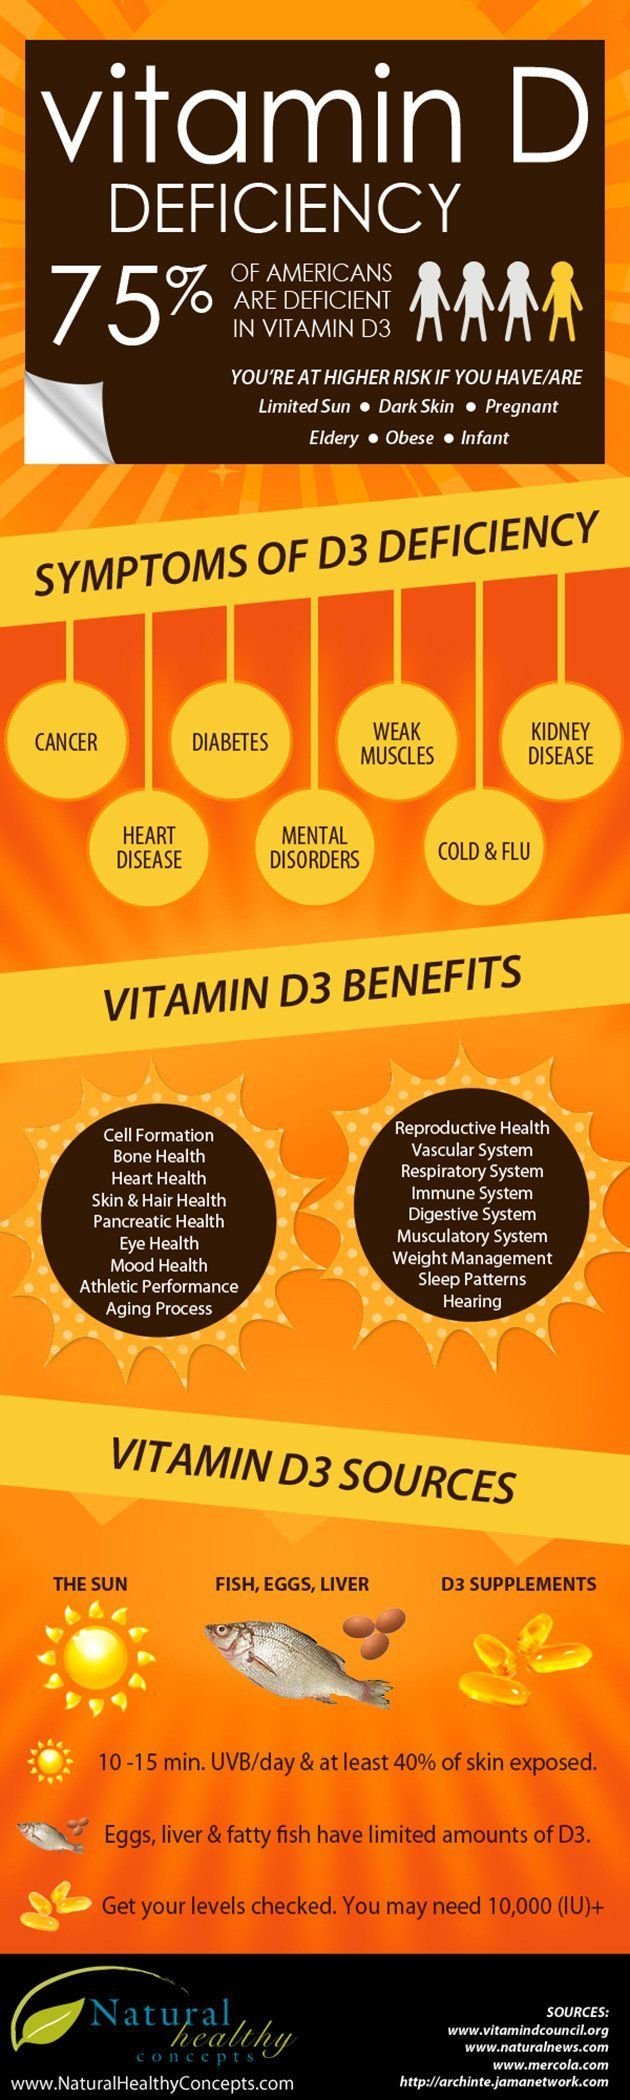 For all the folks in winter this time of year: #VitaminD Deficiency #Infographic